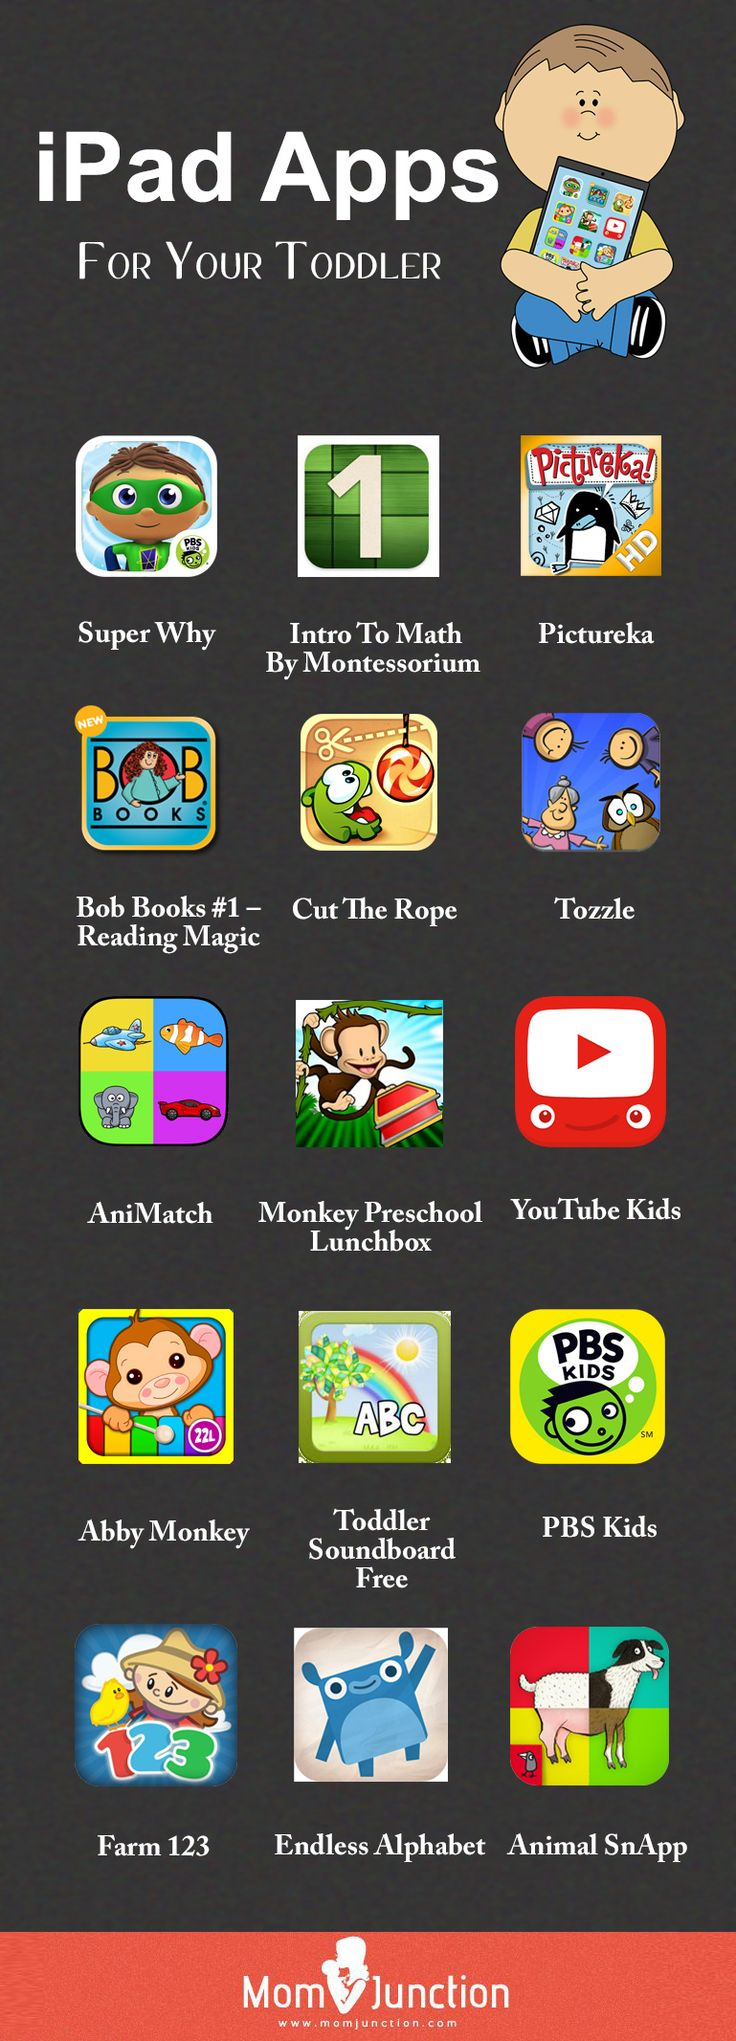 Are you always struggling to find innovative ways to teach your toddler? Do you want to download the best ipad apps for toddlers ? Read on to learn more about them!